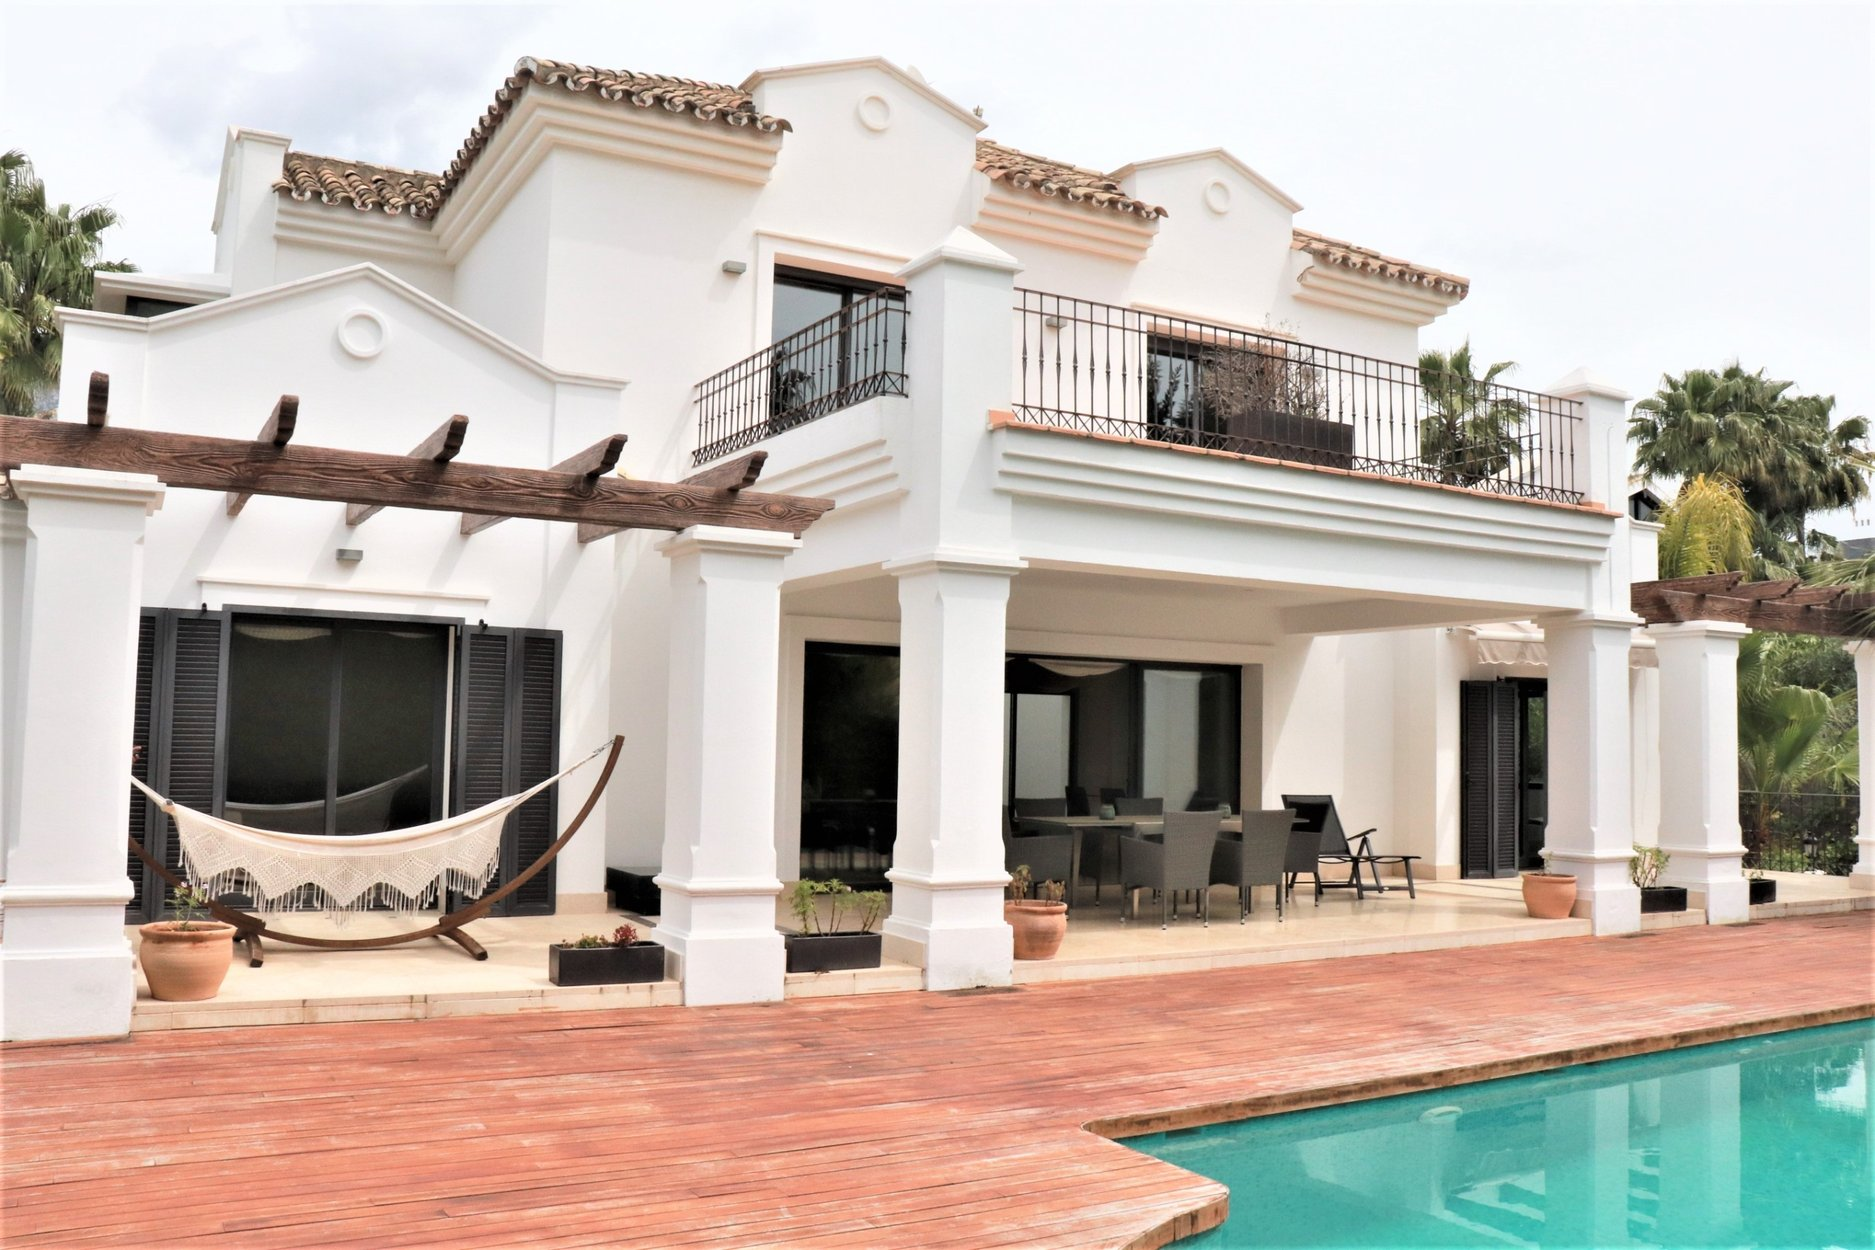 Villa for rent in Marbella, Altos de Puente Romano